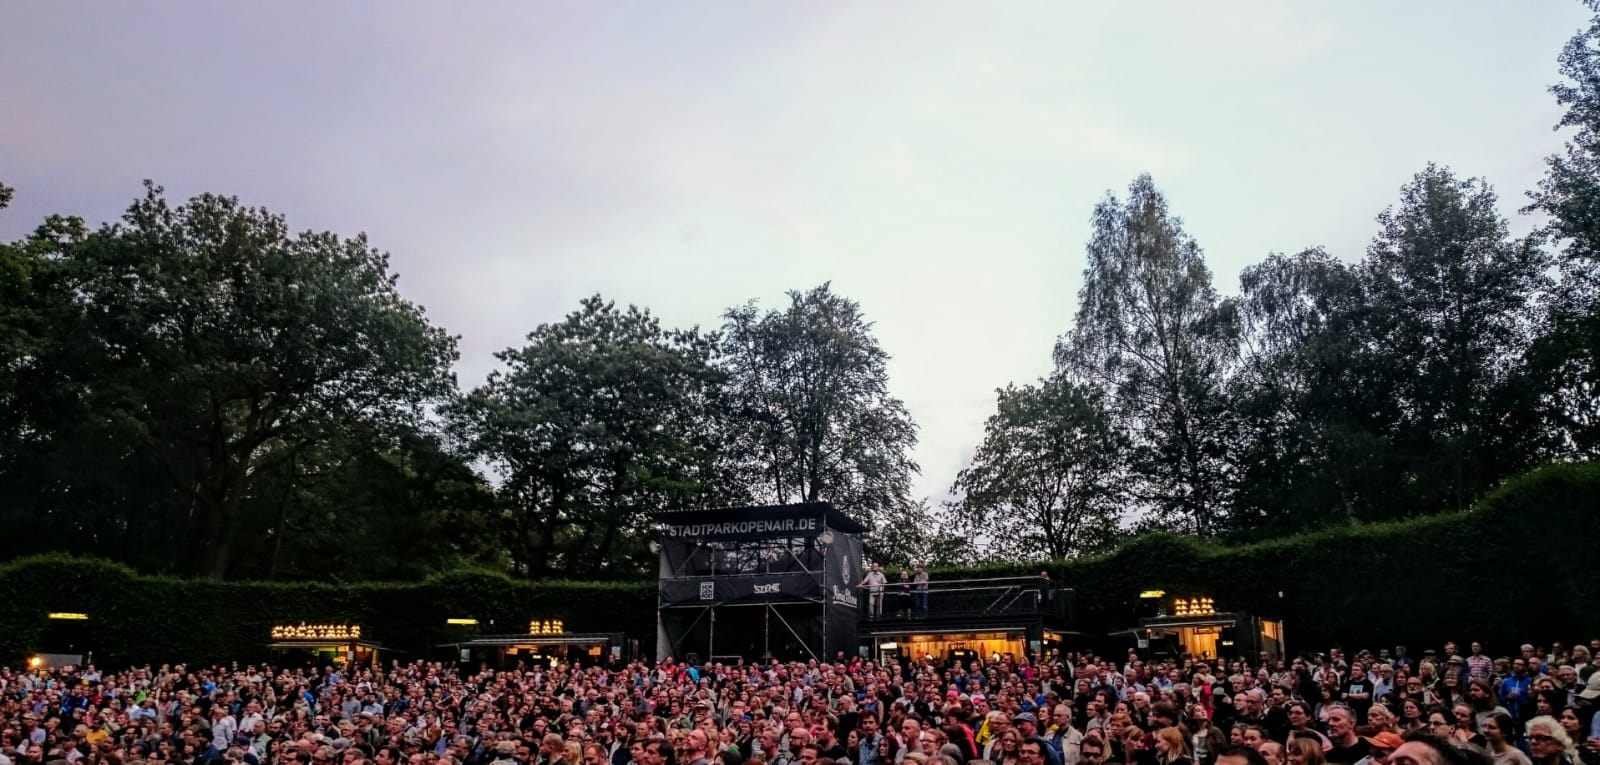 Calexico, Iron & Wine, Stadtpark, Hamburg, Germany, Open Air, concert, Years To Burn, Album, Folk, Pop, Country, Trees